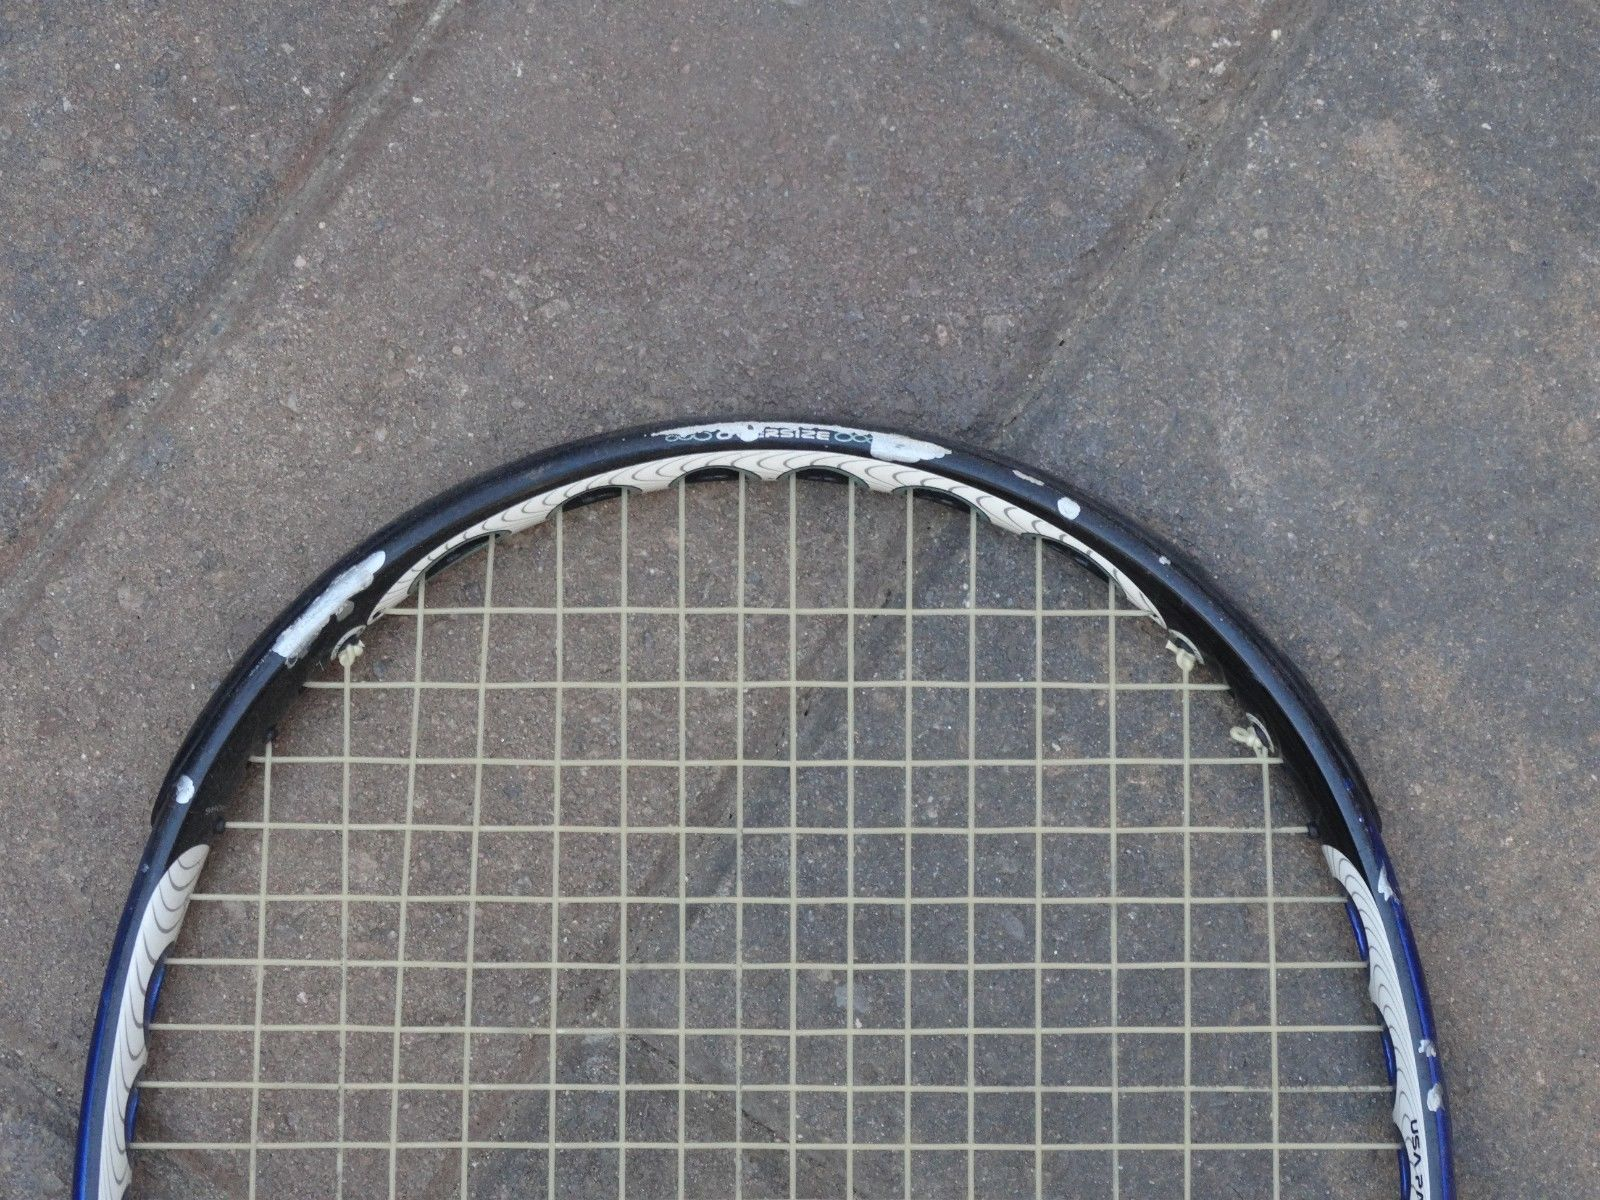 Prince Ozone o 3 Zone Four tennis racket used racquet